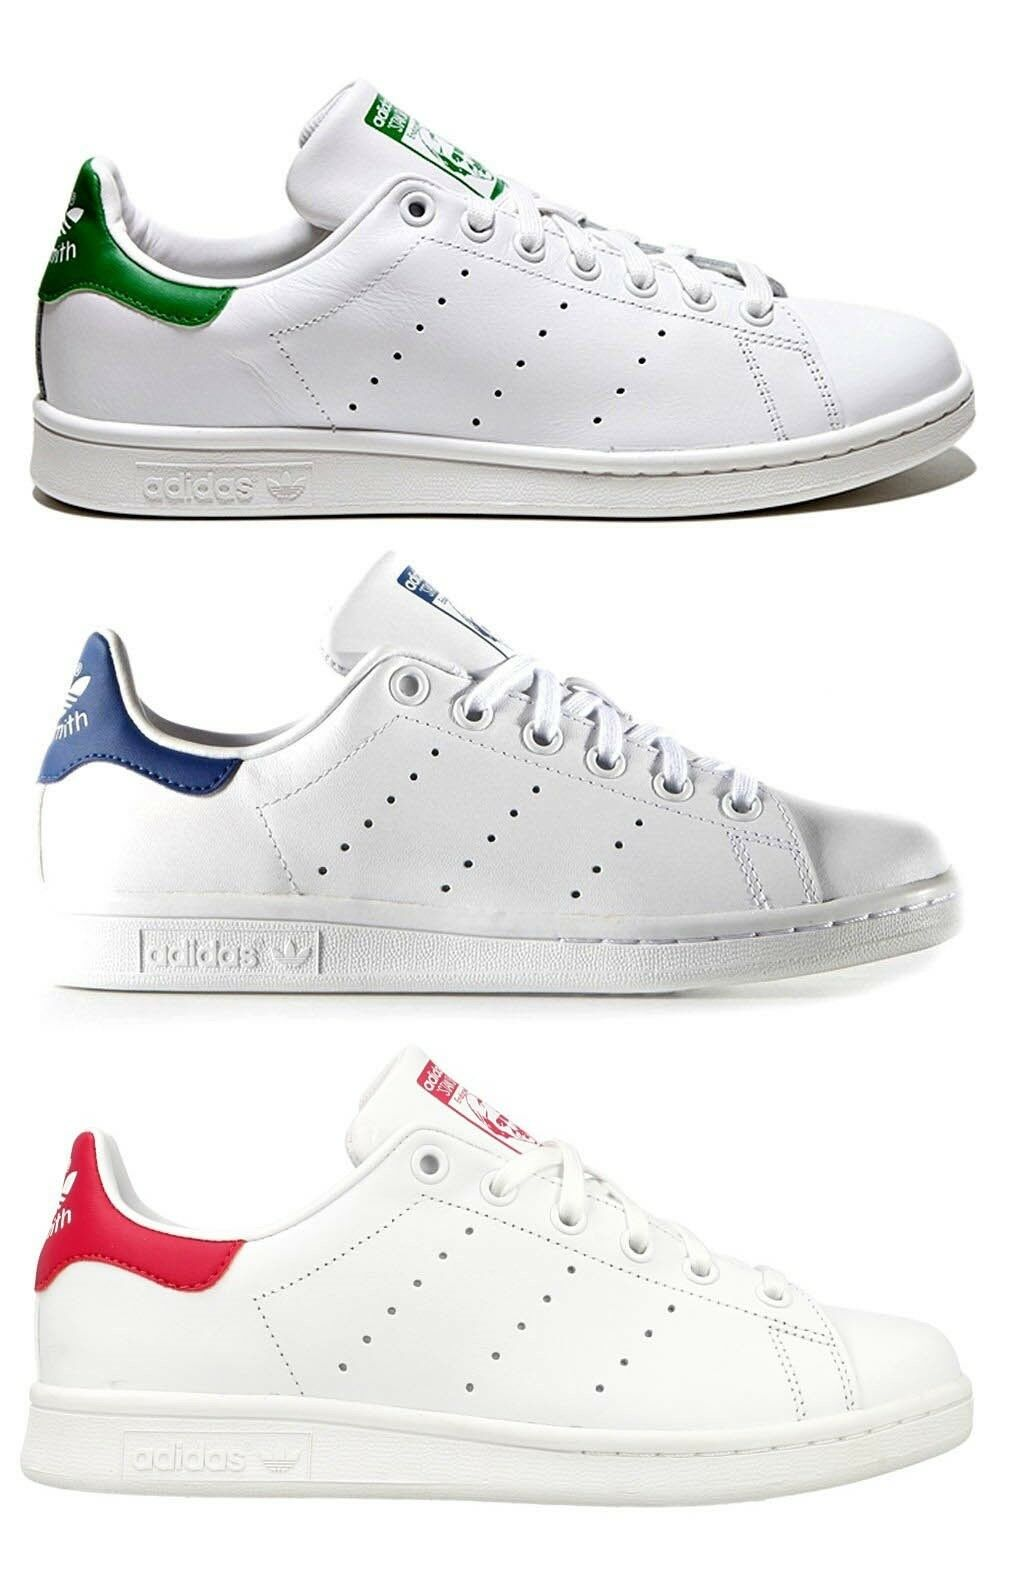 ADIDAS STAN SMITH J women scarpe donna sportive sneakers pelle bianche casual 1 sur 12 Voir Plus